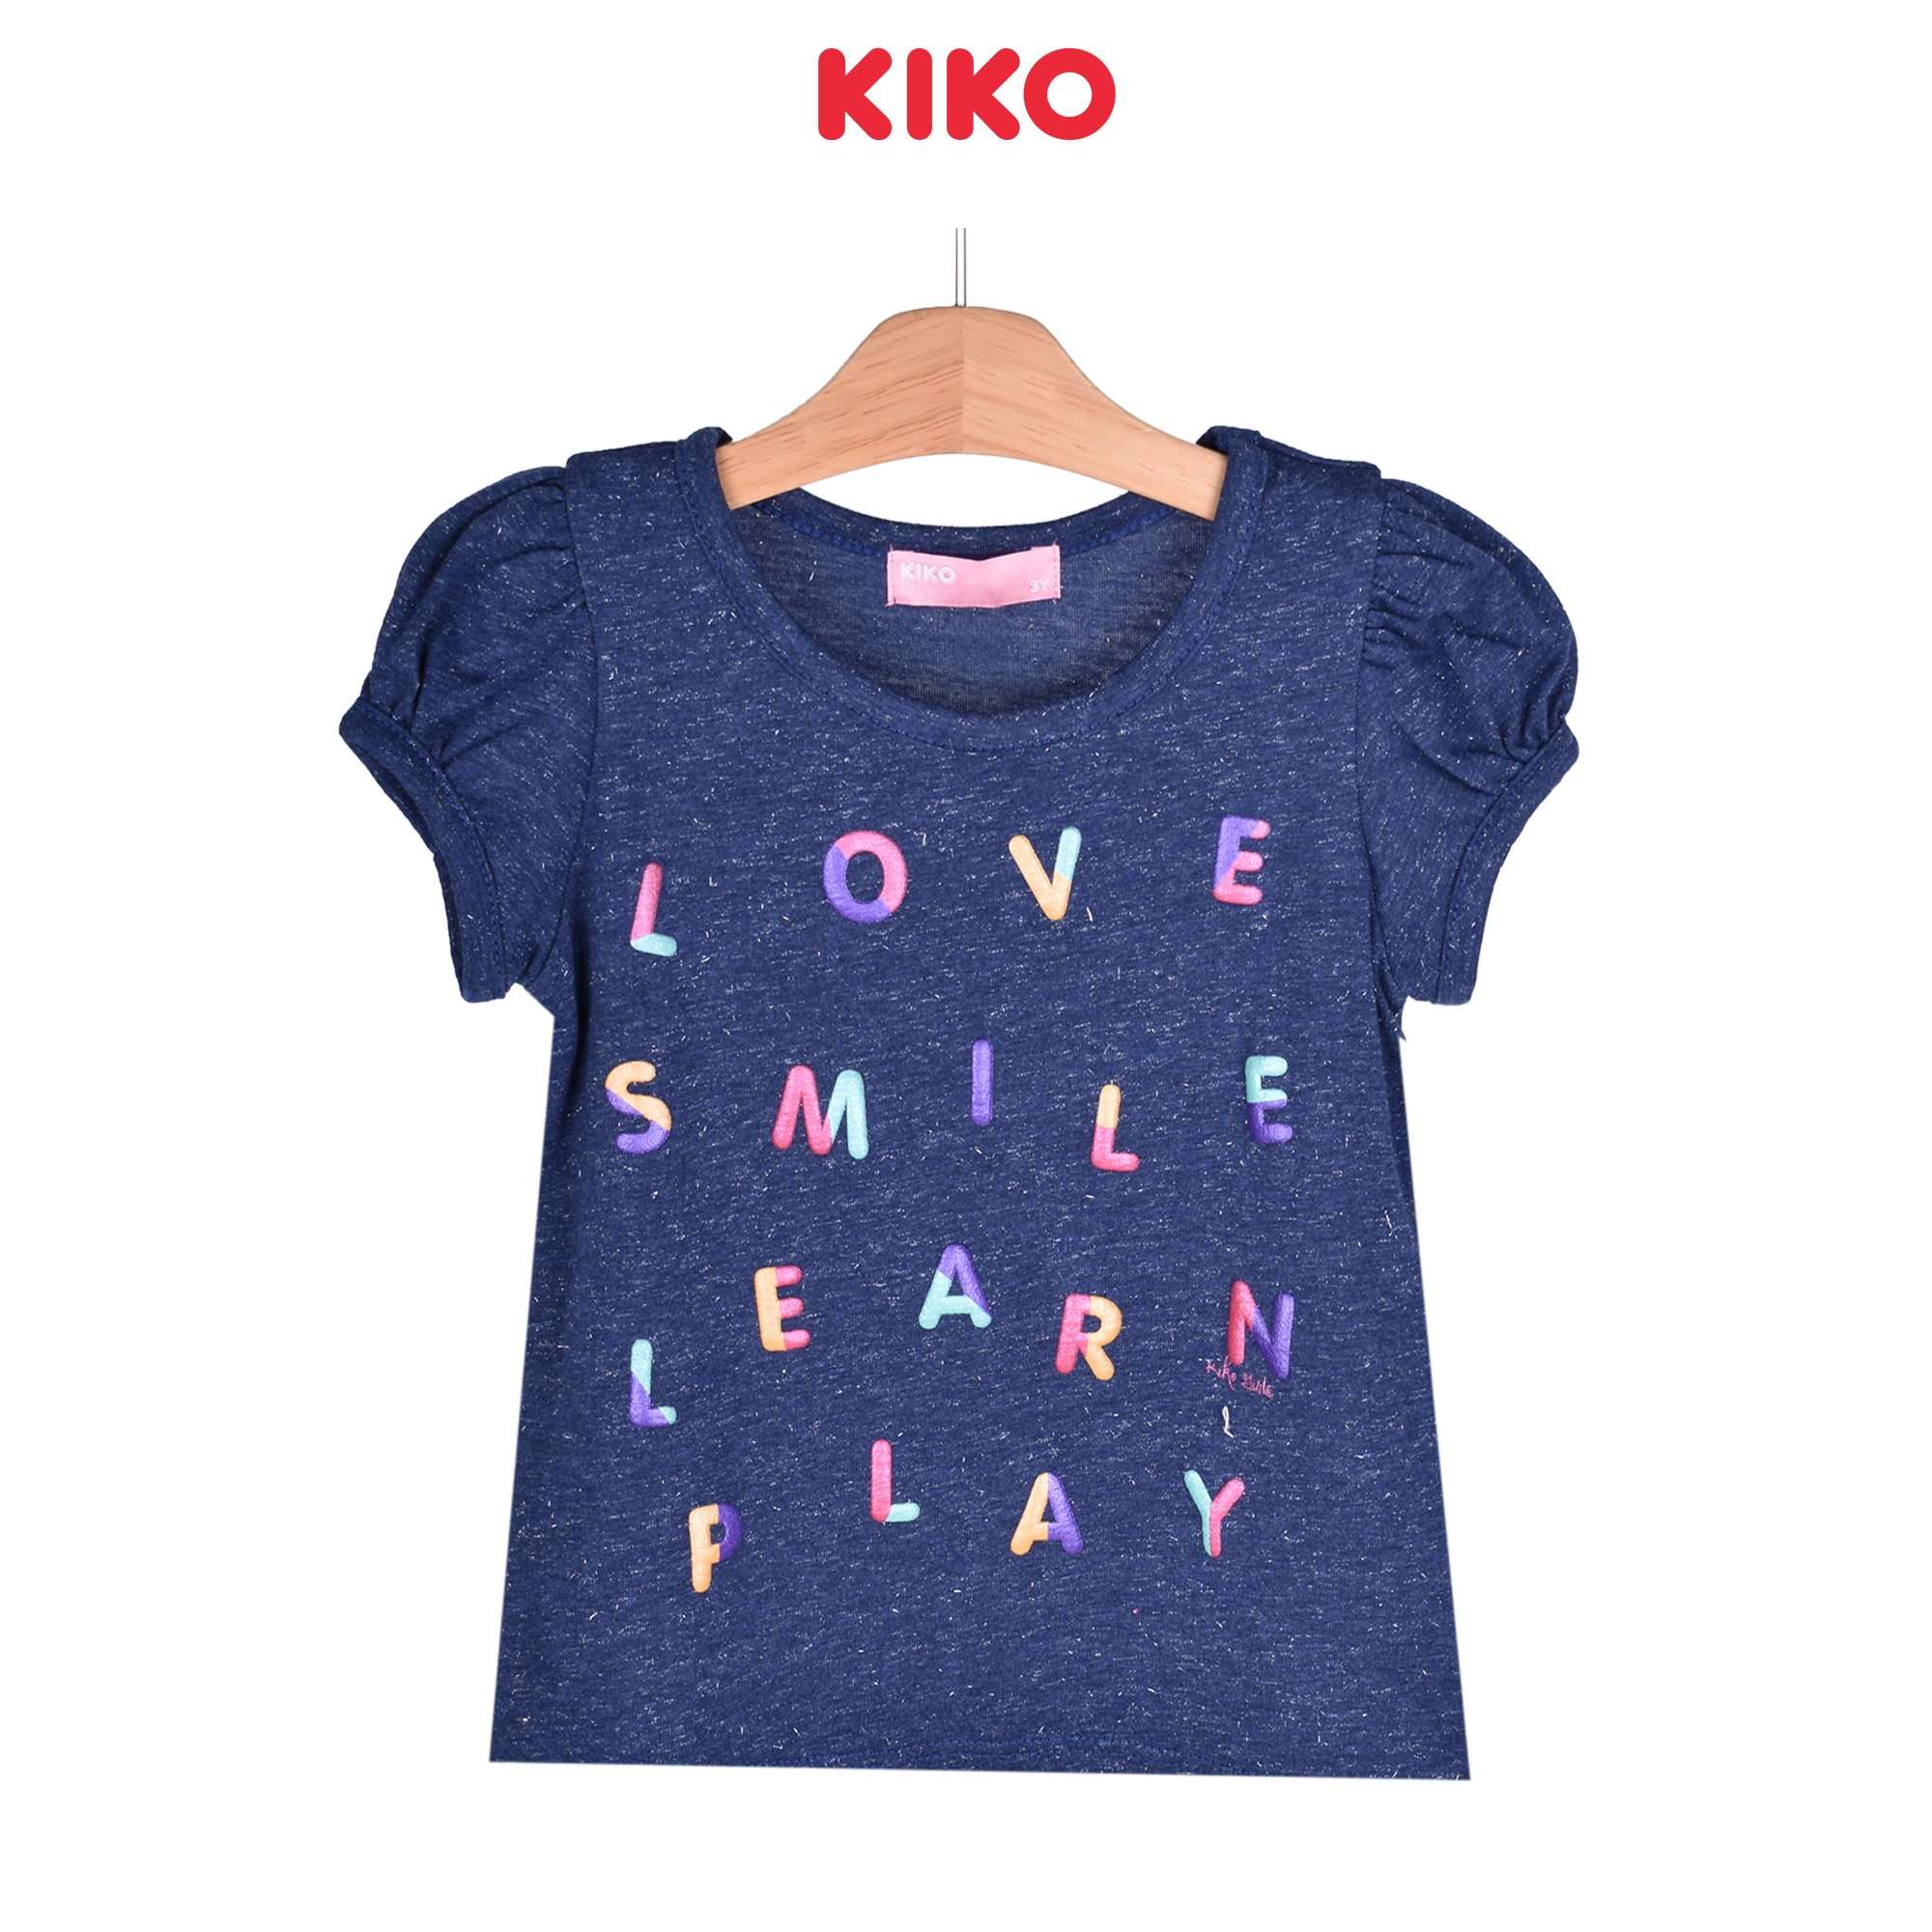 KIKO Girl Short Sleeve Tee 135068-111 : Buy KIKO online at CMG.MY